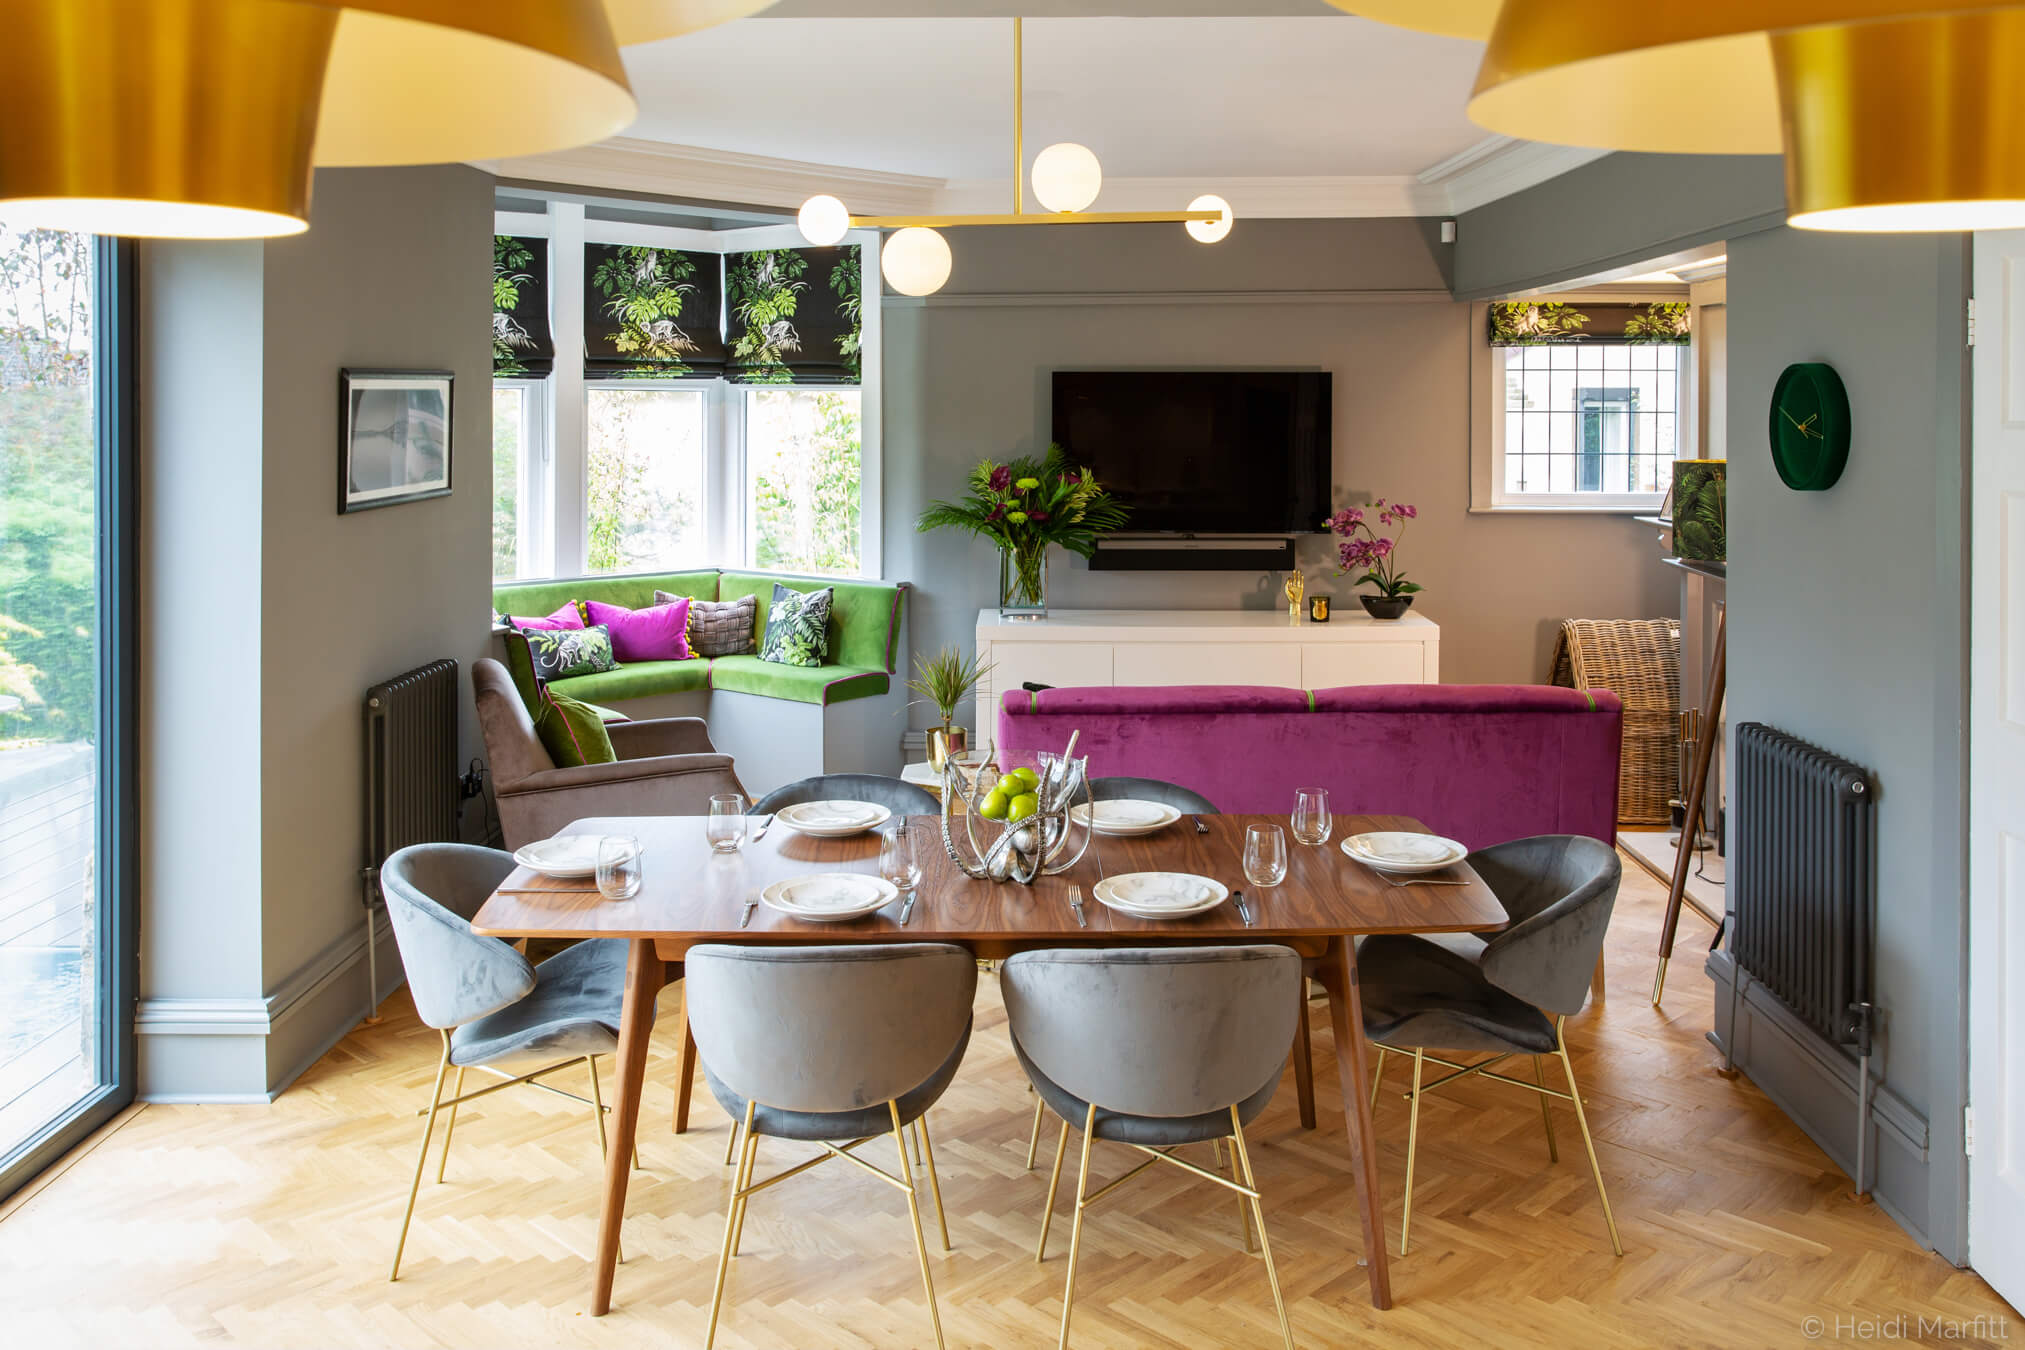 Bursts of colour add personality to this open plan kitchen/sitting room